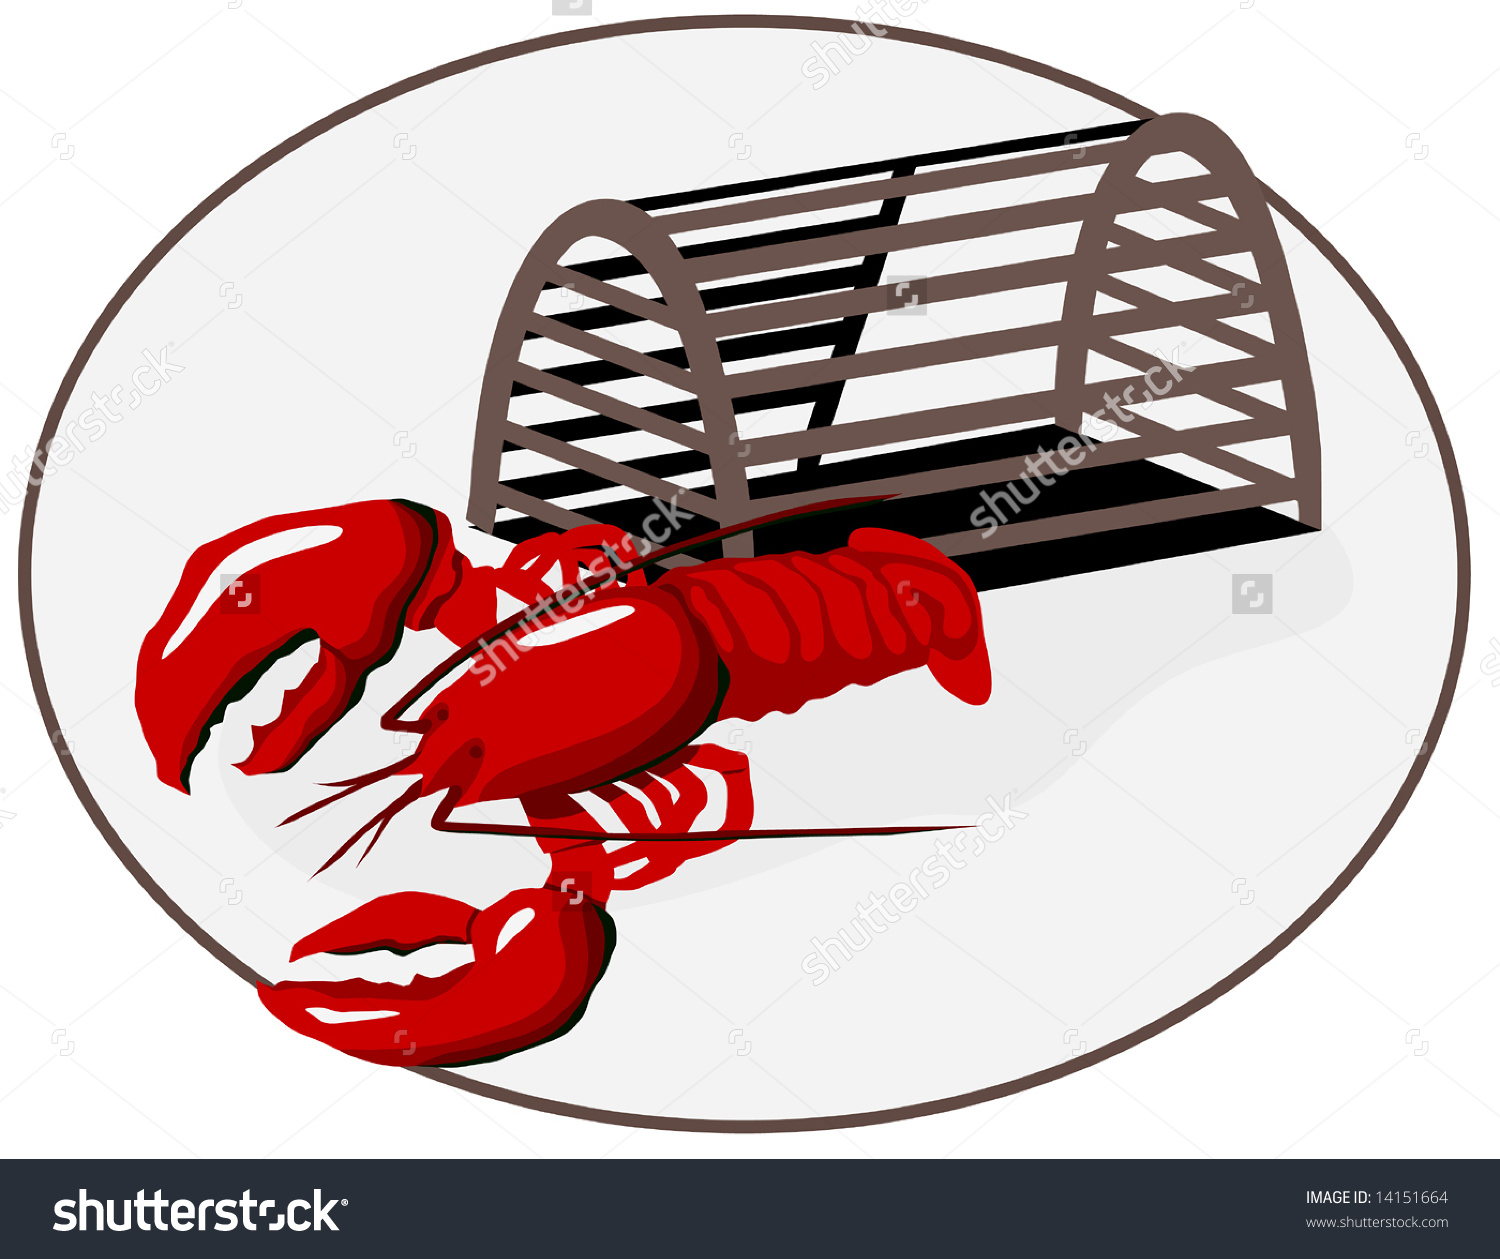 Lobster trap clipart - Clipground